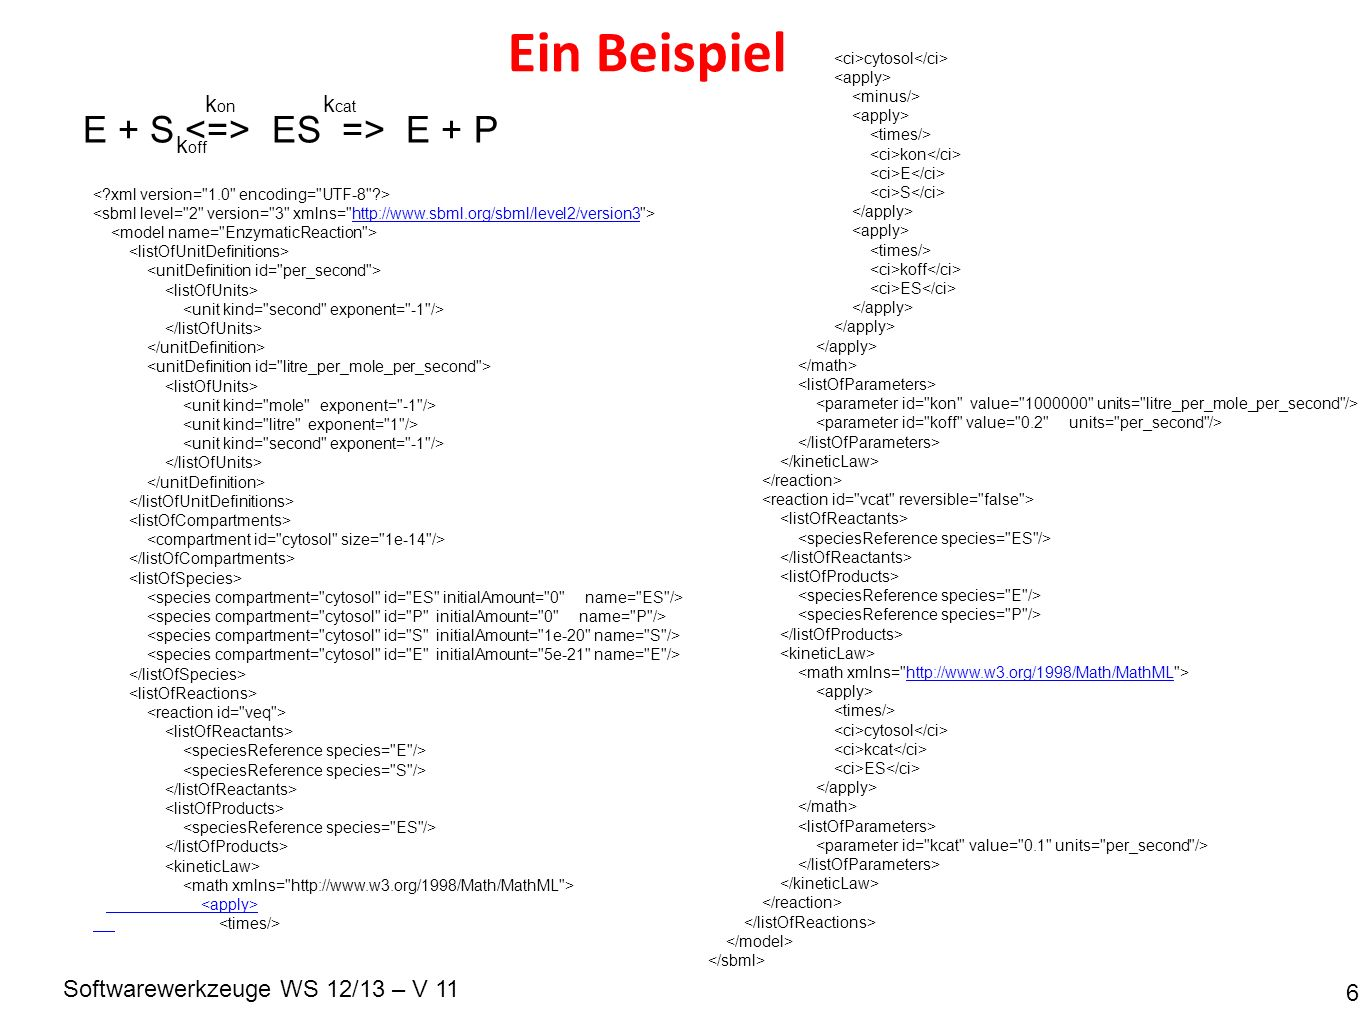 Softwarewerkzeuge WS 12/13 – V 11 Ein Beispiel 6 E + S ES => E + P k on k off k cat http://www.sbml.org/sbml/level2/version3 cytosol kon E S koff ES http://www.w3.org/1998/Math/MathML cytosol kcat ES